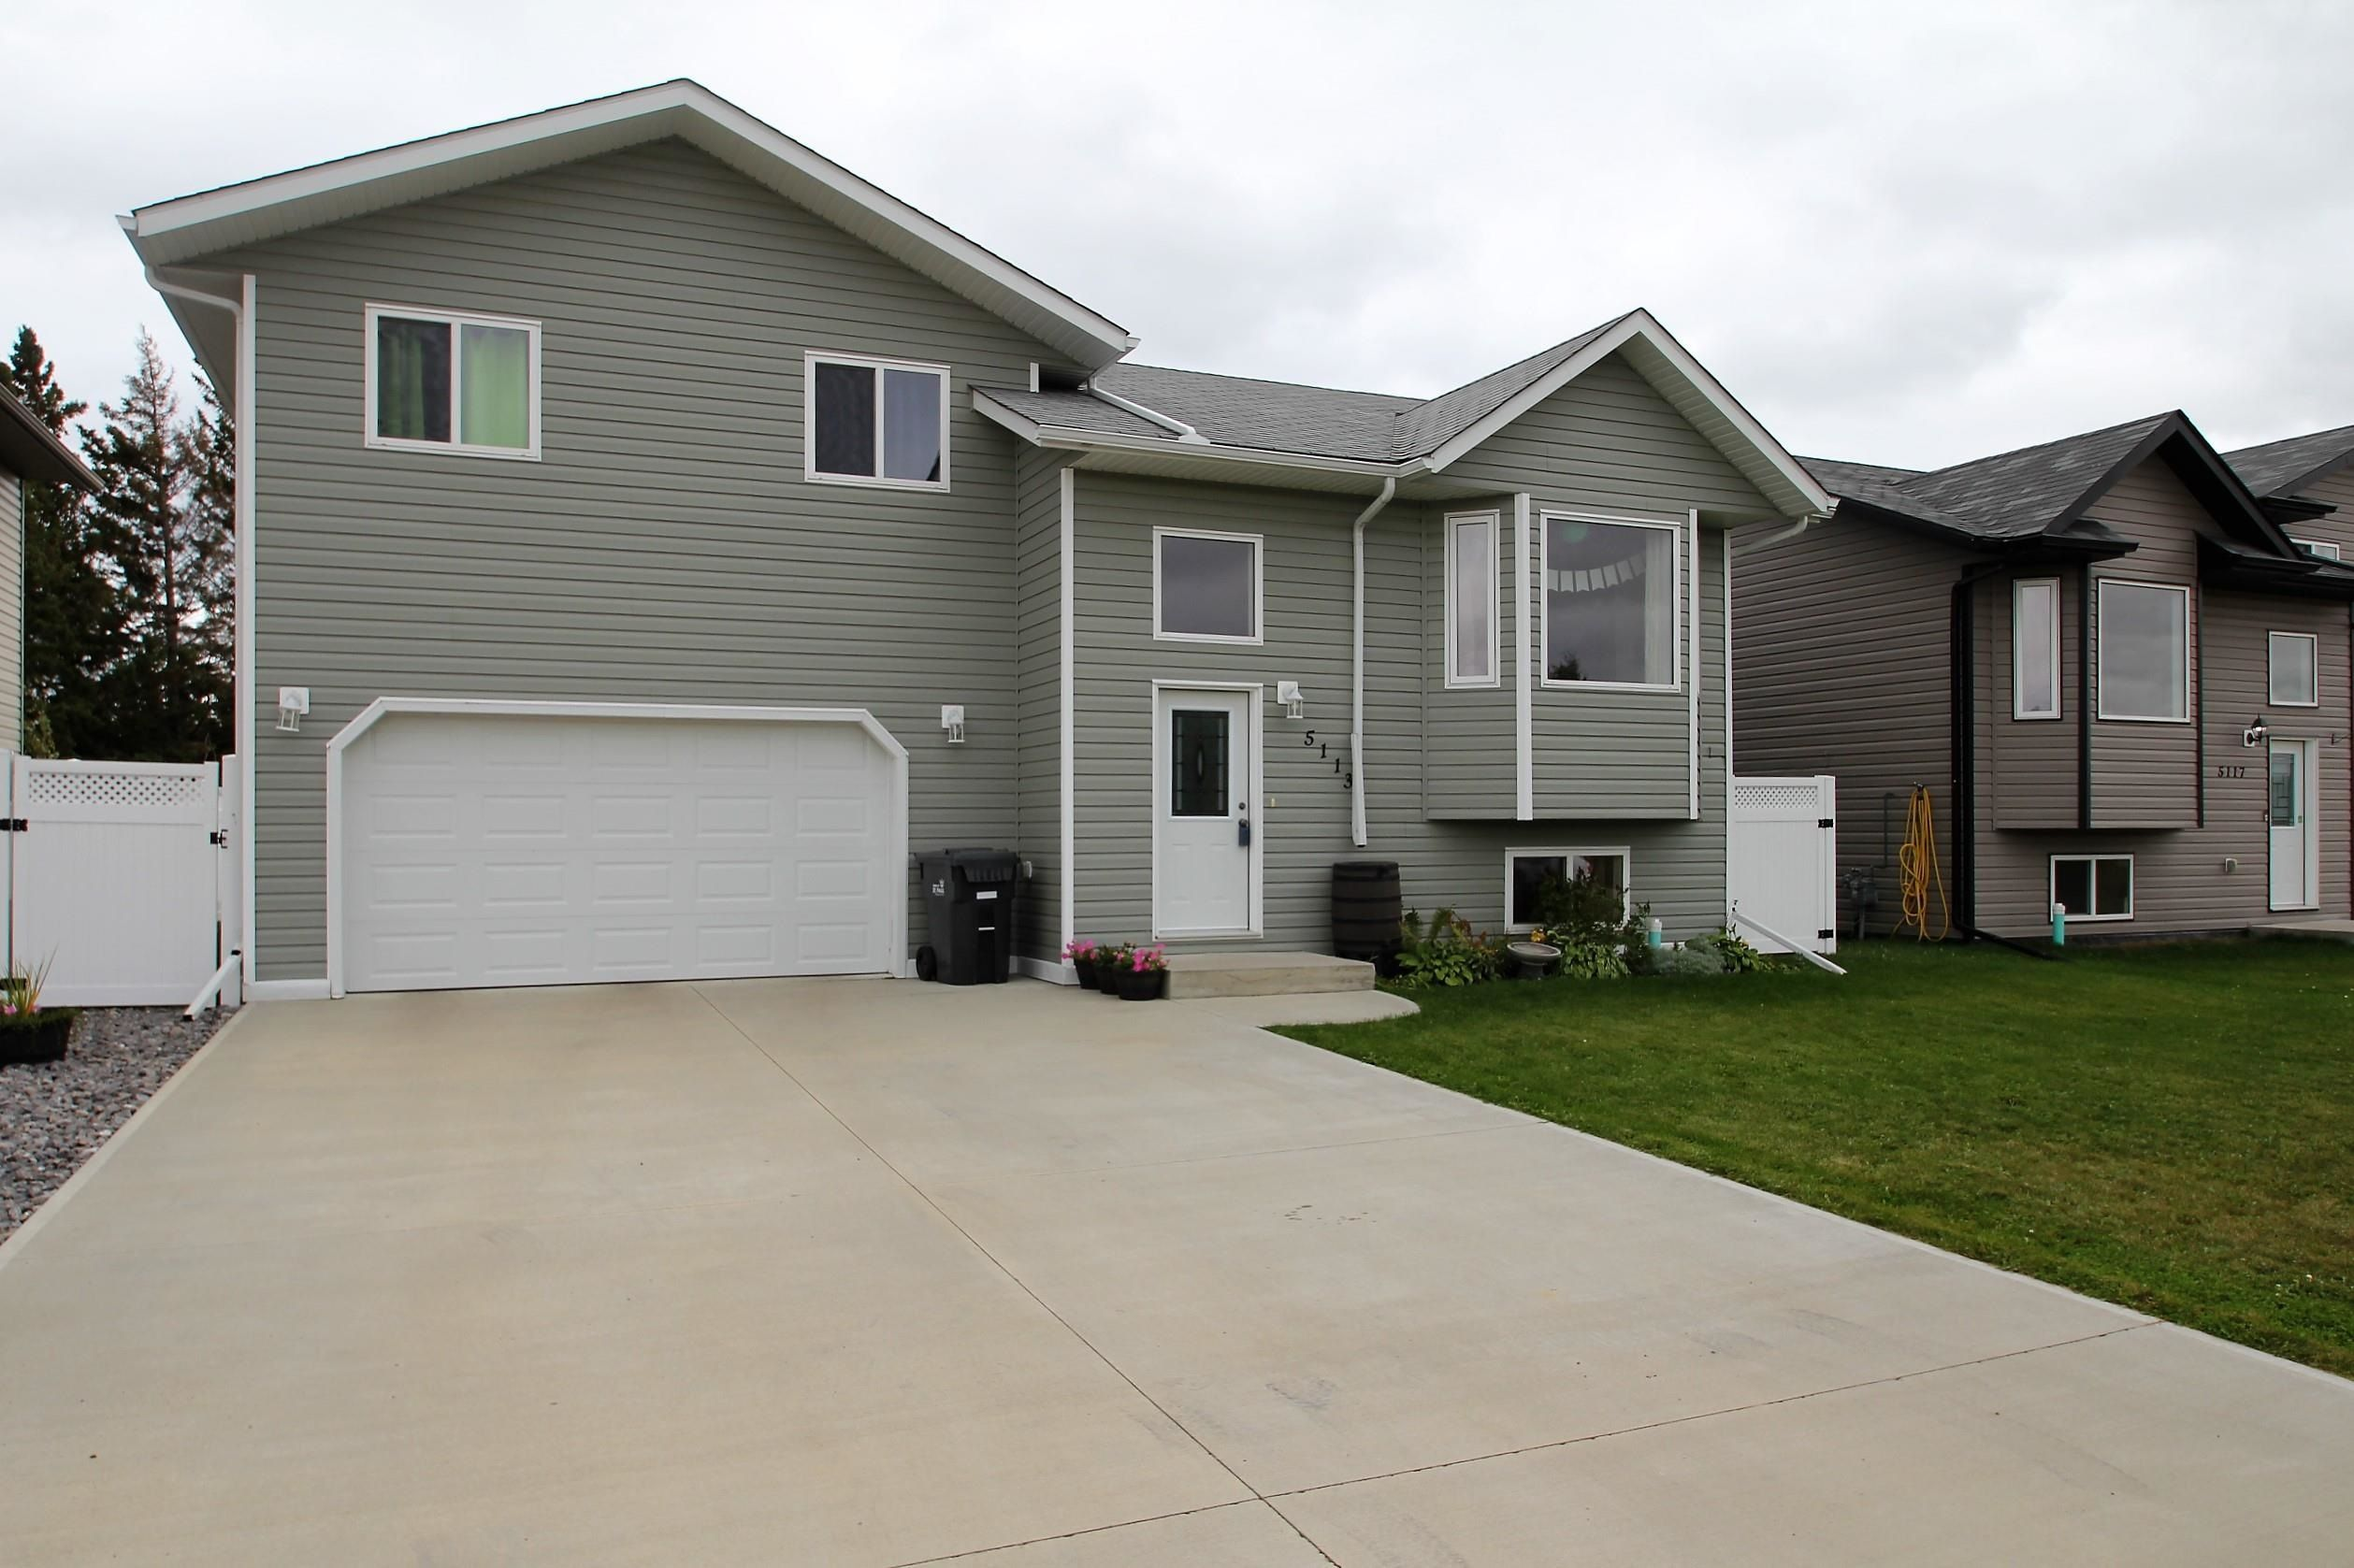 Main Photo: 5113 56 Ave: St. Paul Town House for sale : MLS®# E4263067